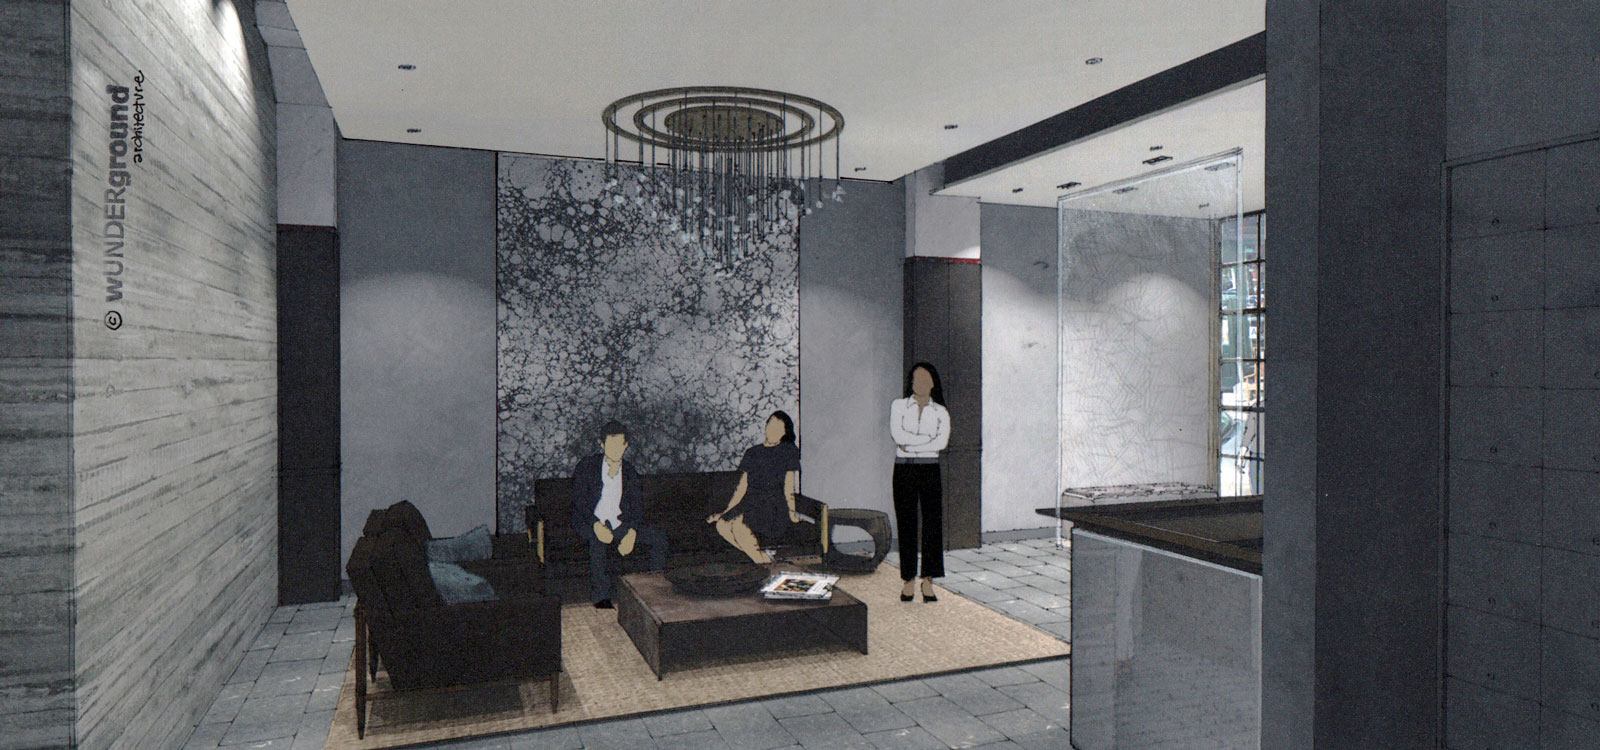 03_wunderground_tribeca_lobby_commercial_residential_interior_perspective.jpg